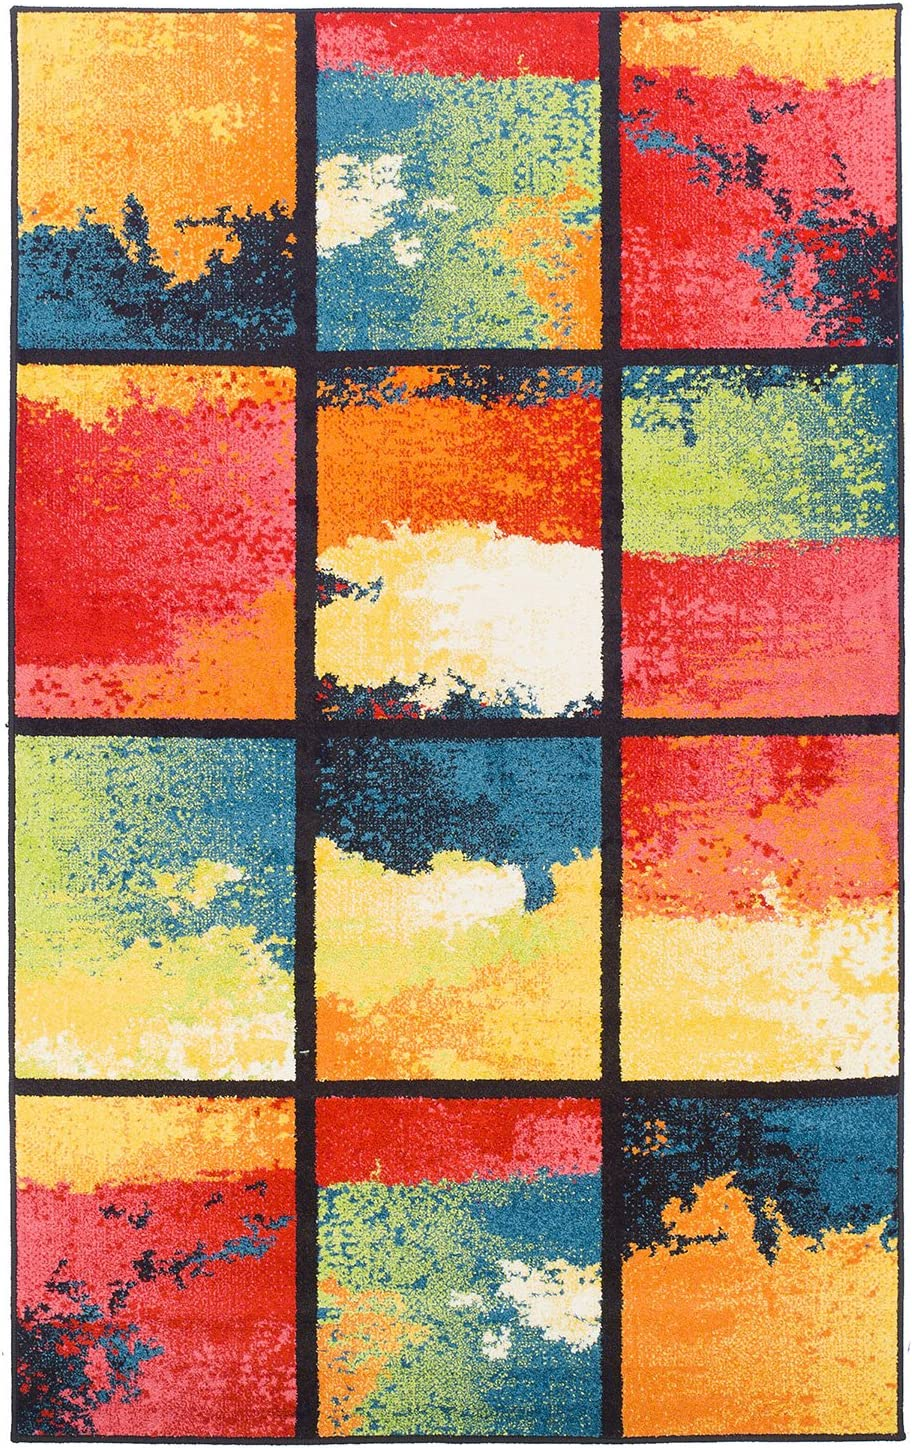 SUPERIOR Painted Cubes Area Max 66% OFF Collection 8X10 Miami Mall Rug